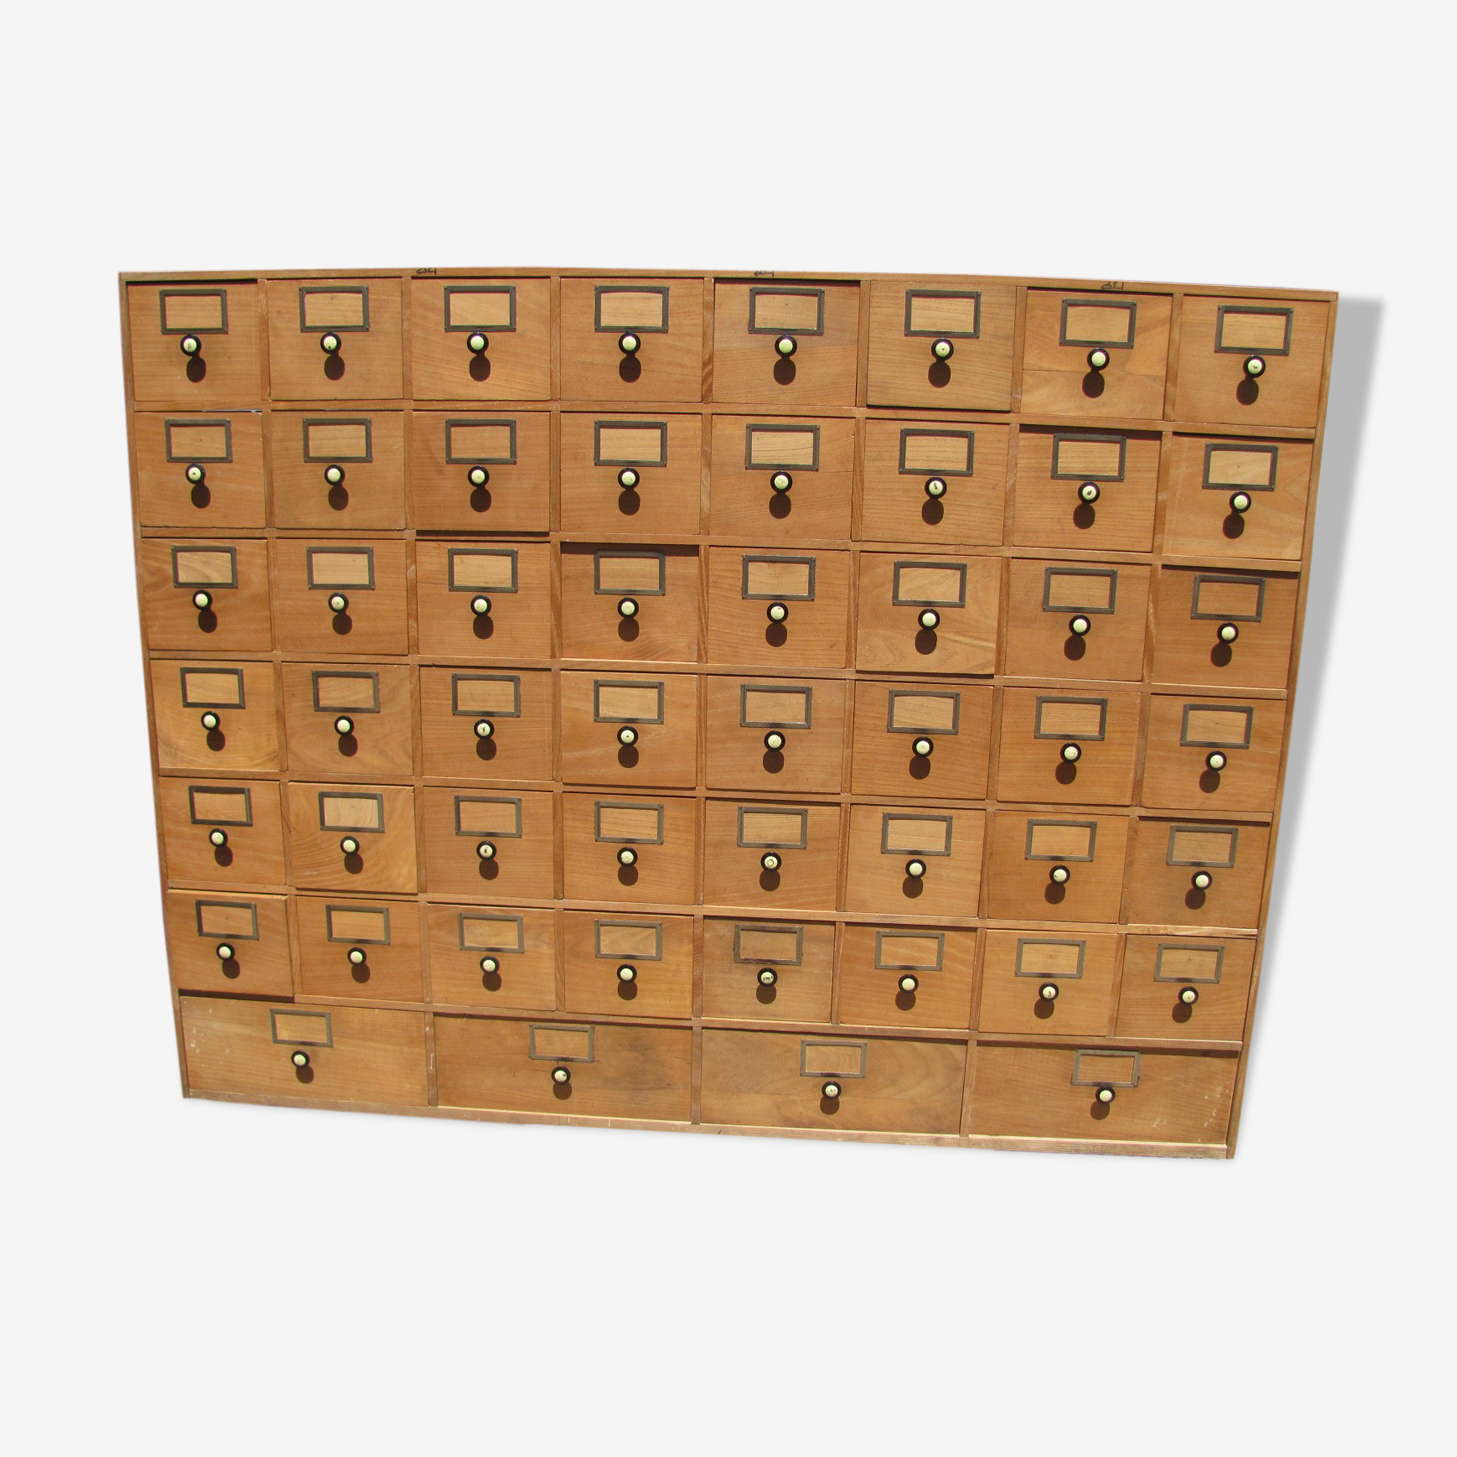 Furniture business 52 lockers or drawers